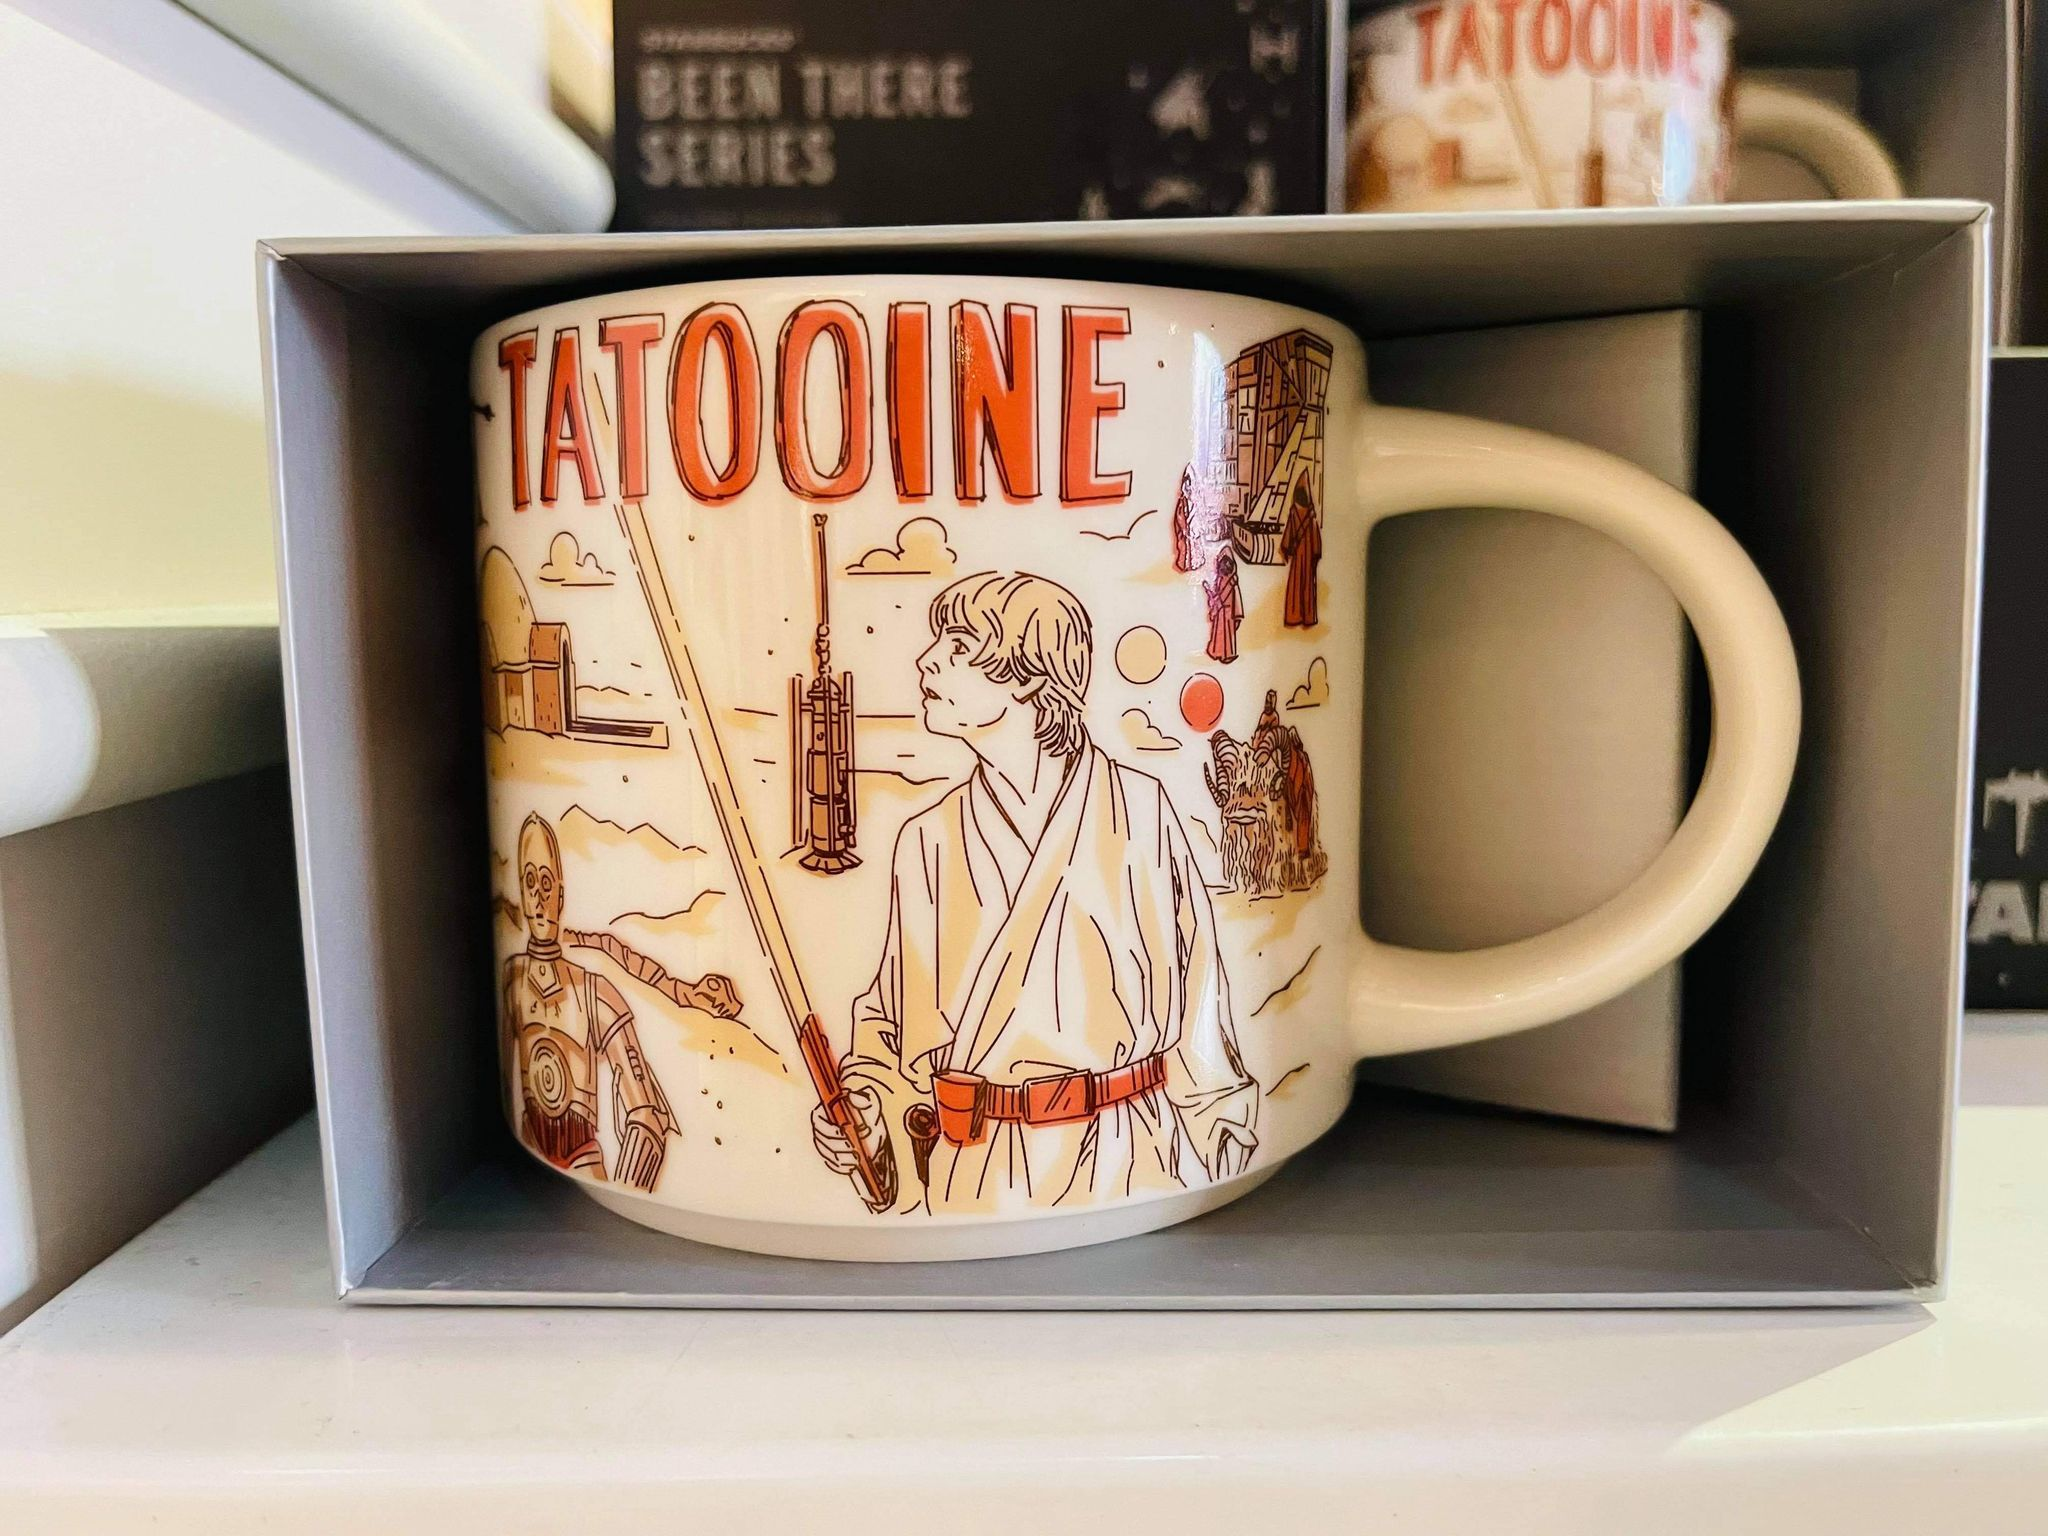 Tatooine Starbucks mug